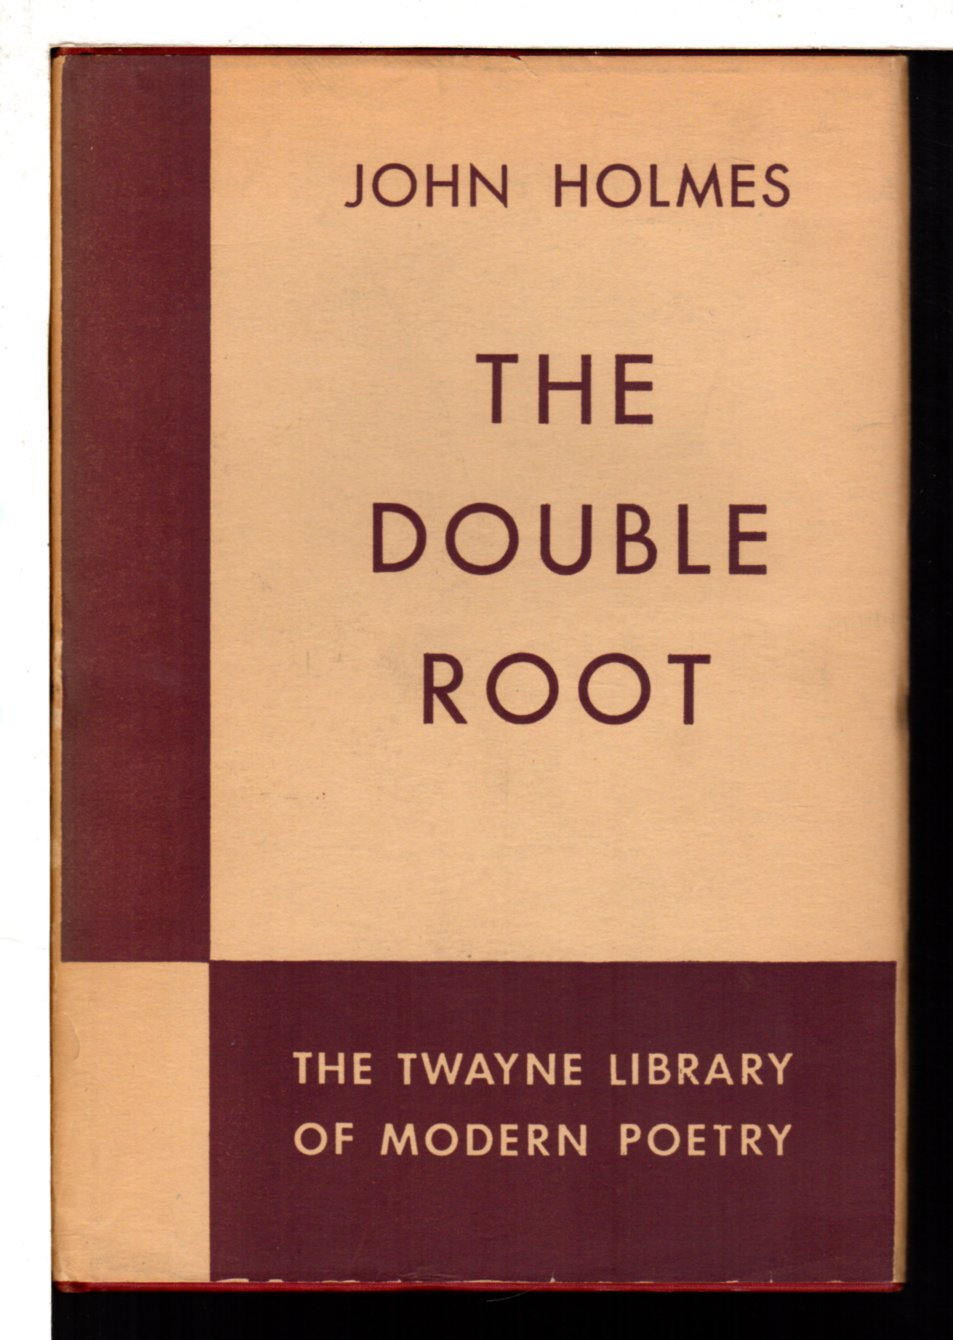 HOLMES, JOHN. - THE DOUBLE ROOT.